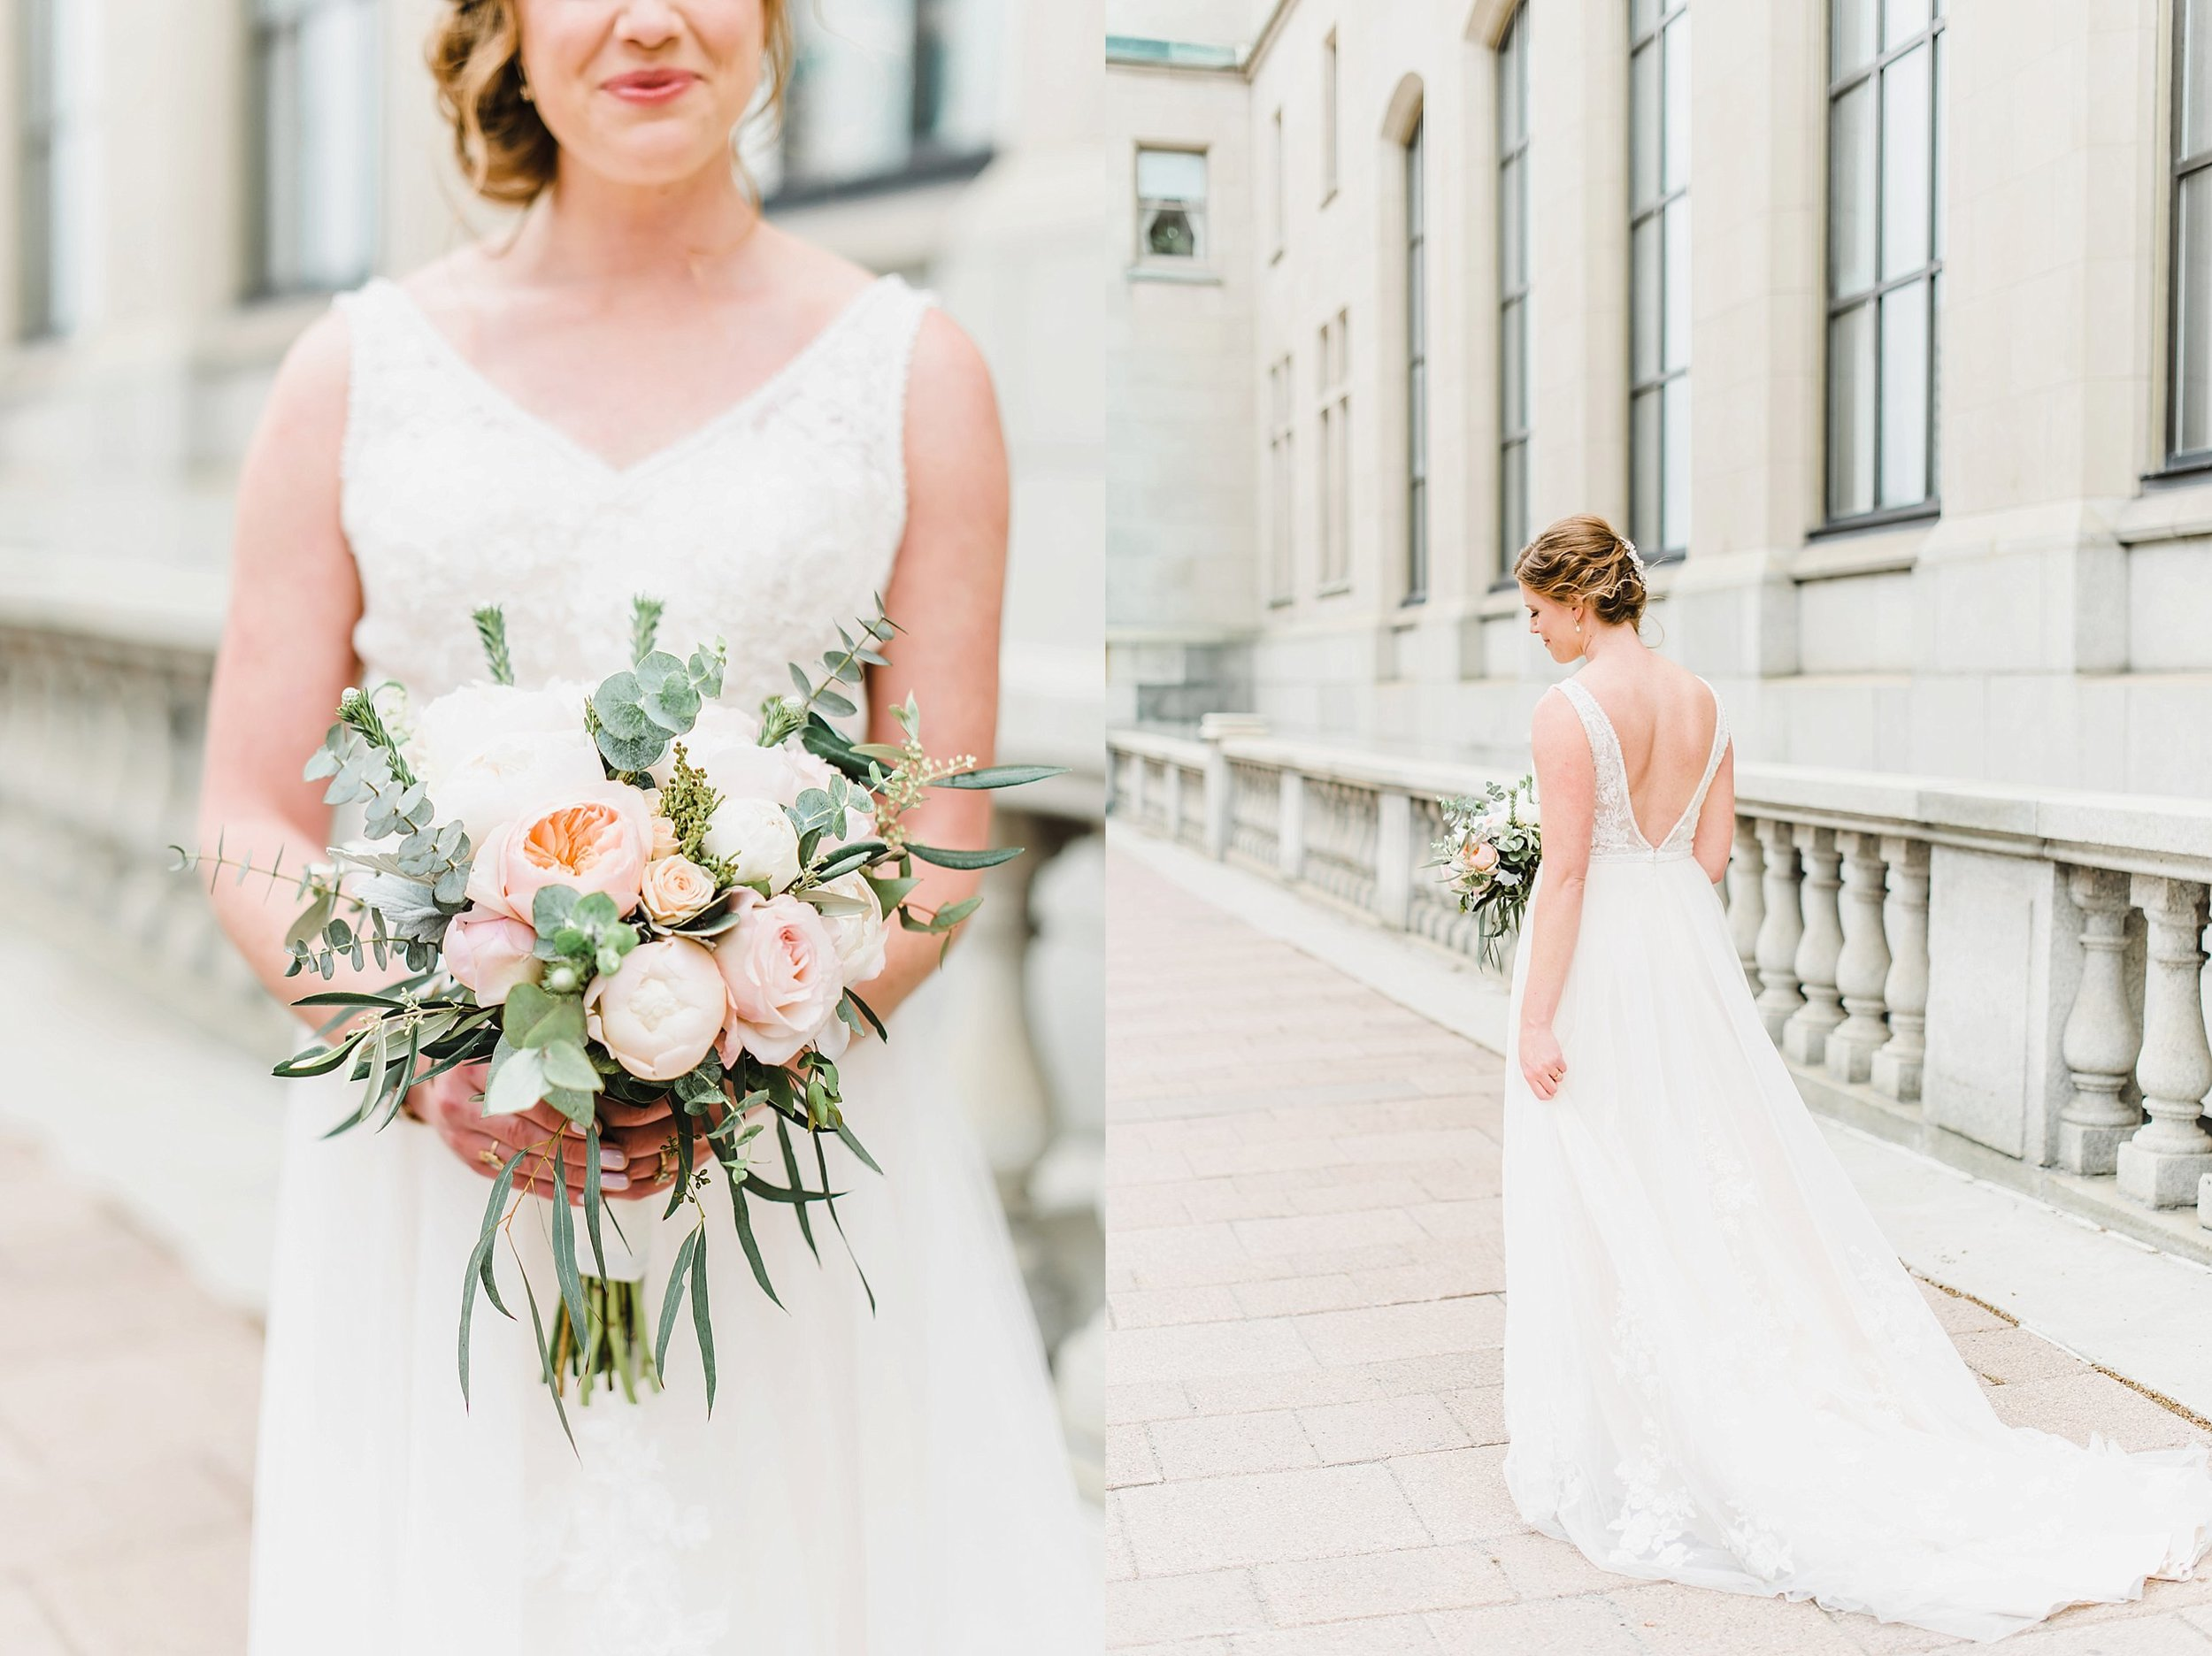 light airy indie fine art ottawa wedding photographer | Ali and Batoul Photography_0333.jpg